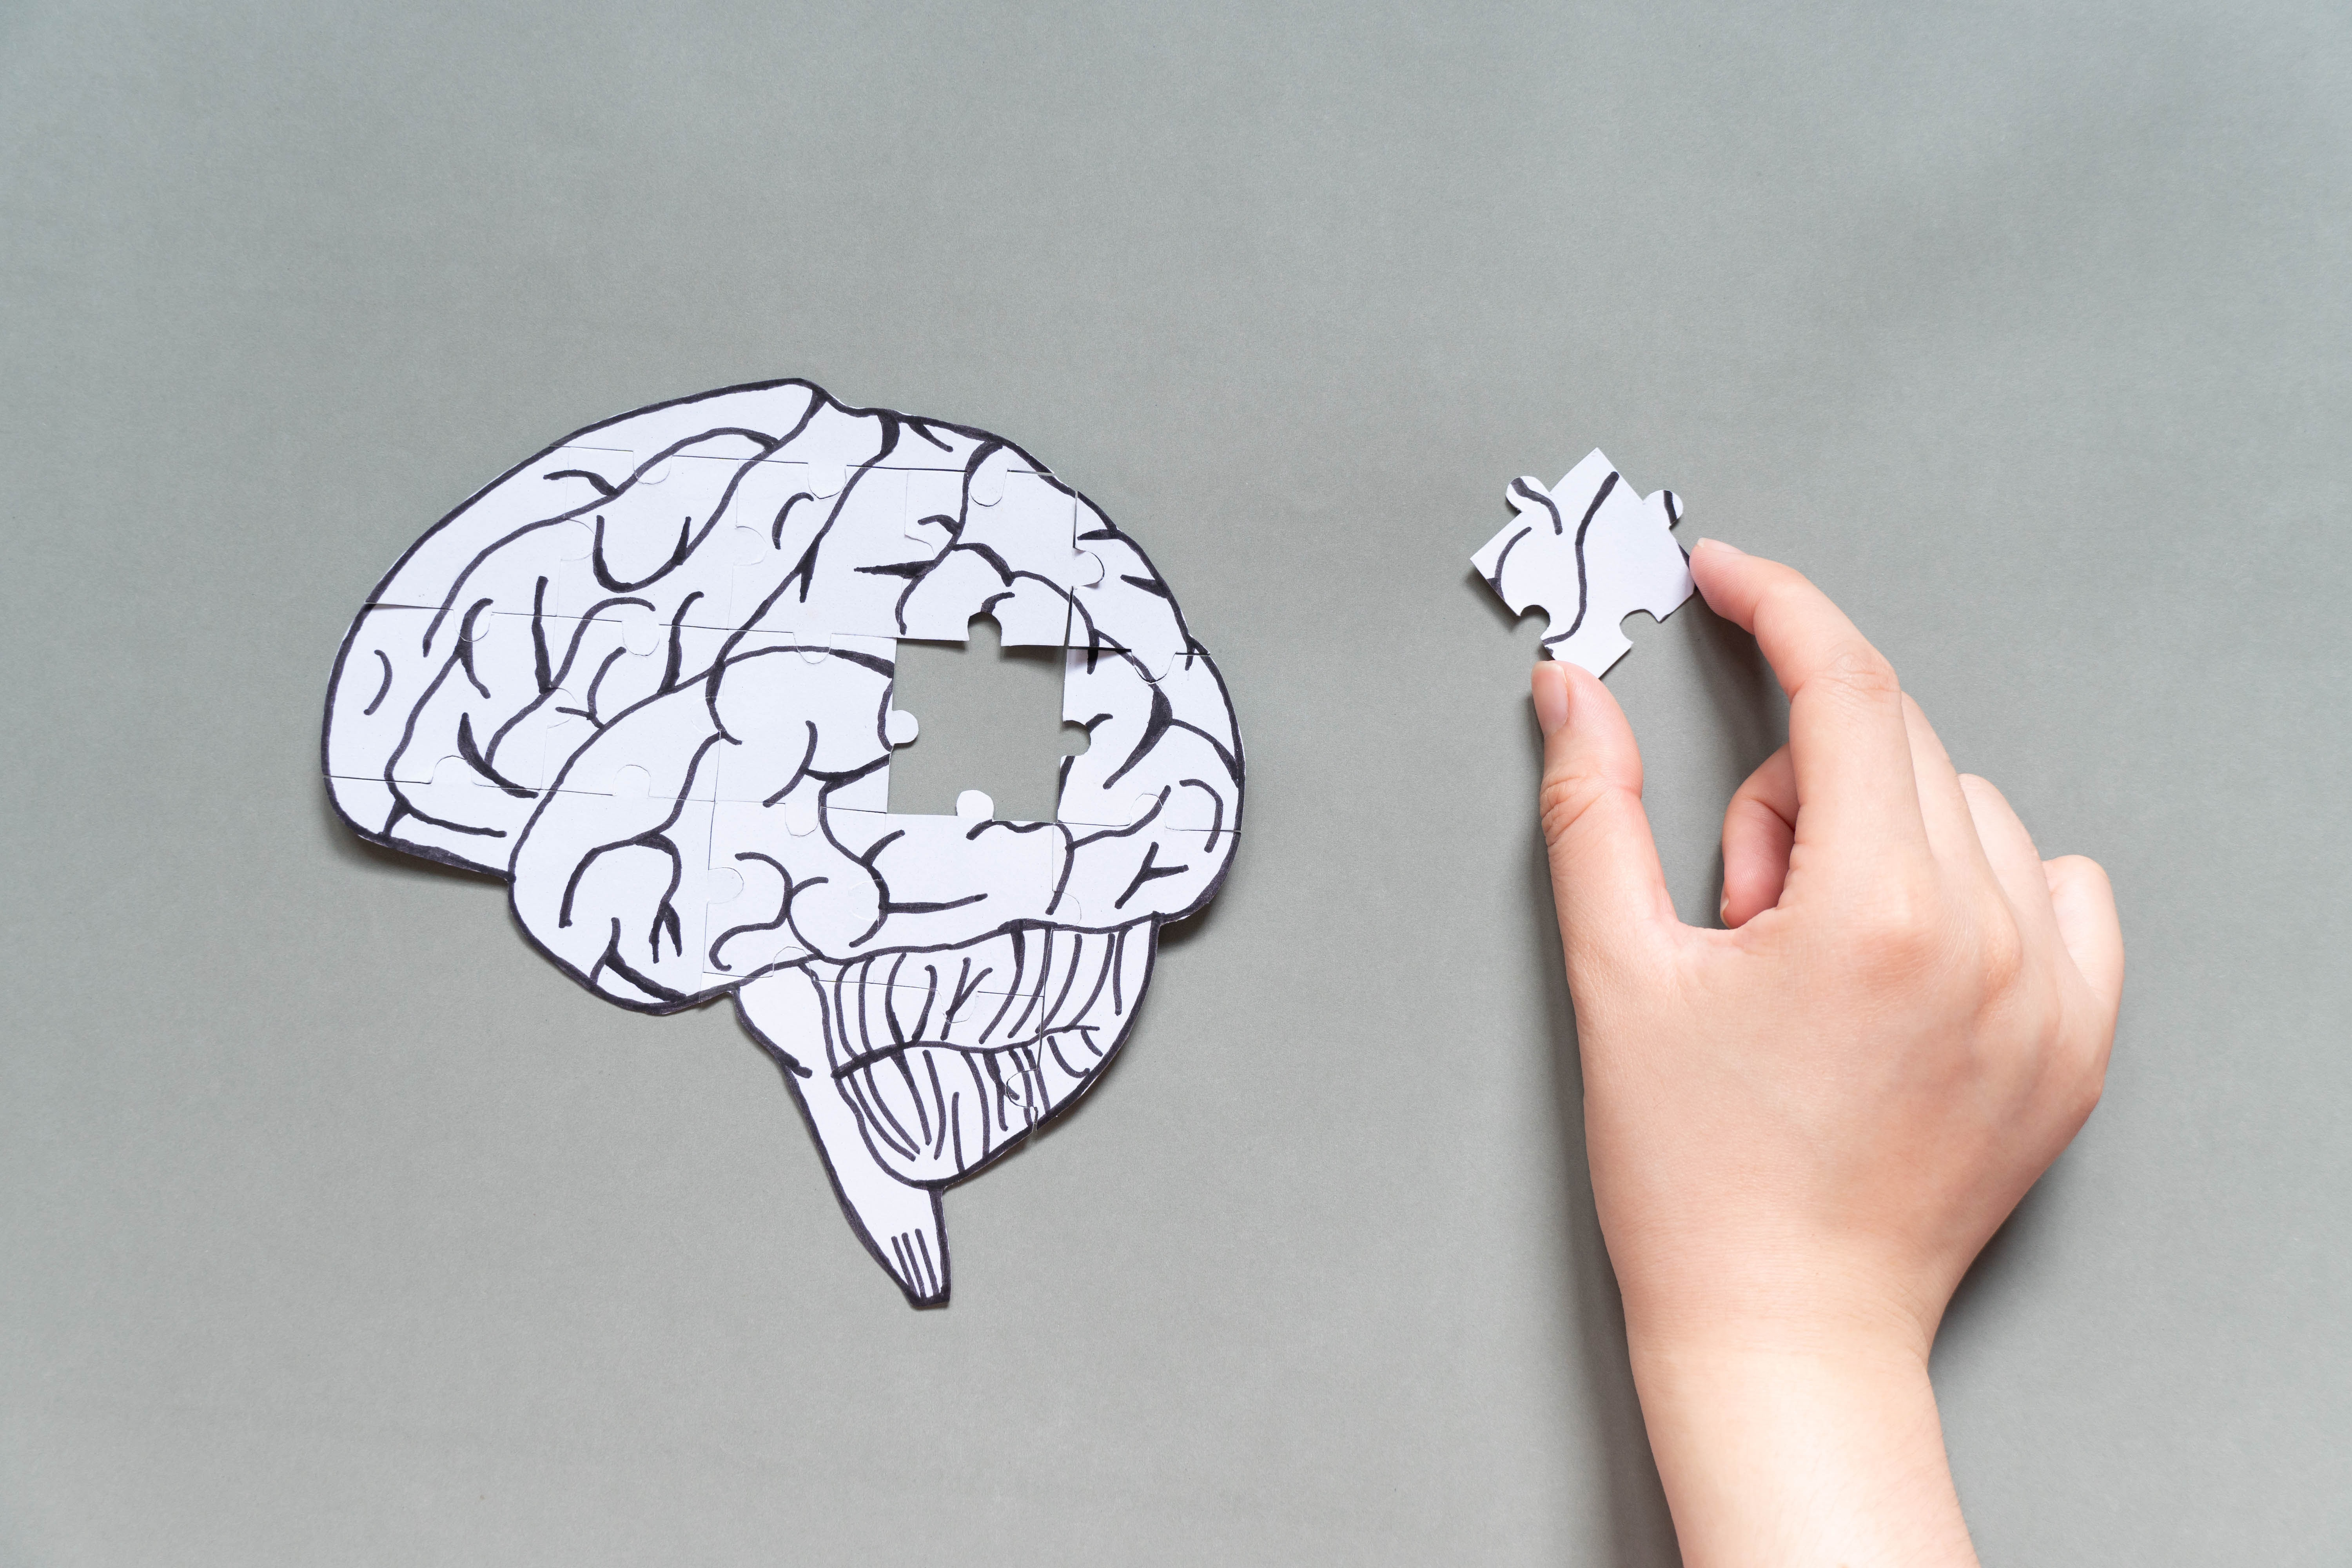 Tips From A Neuroscientist On How To Make Your